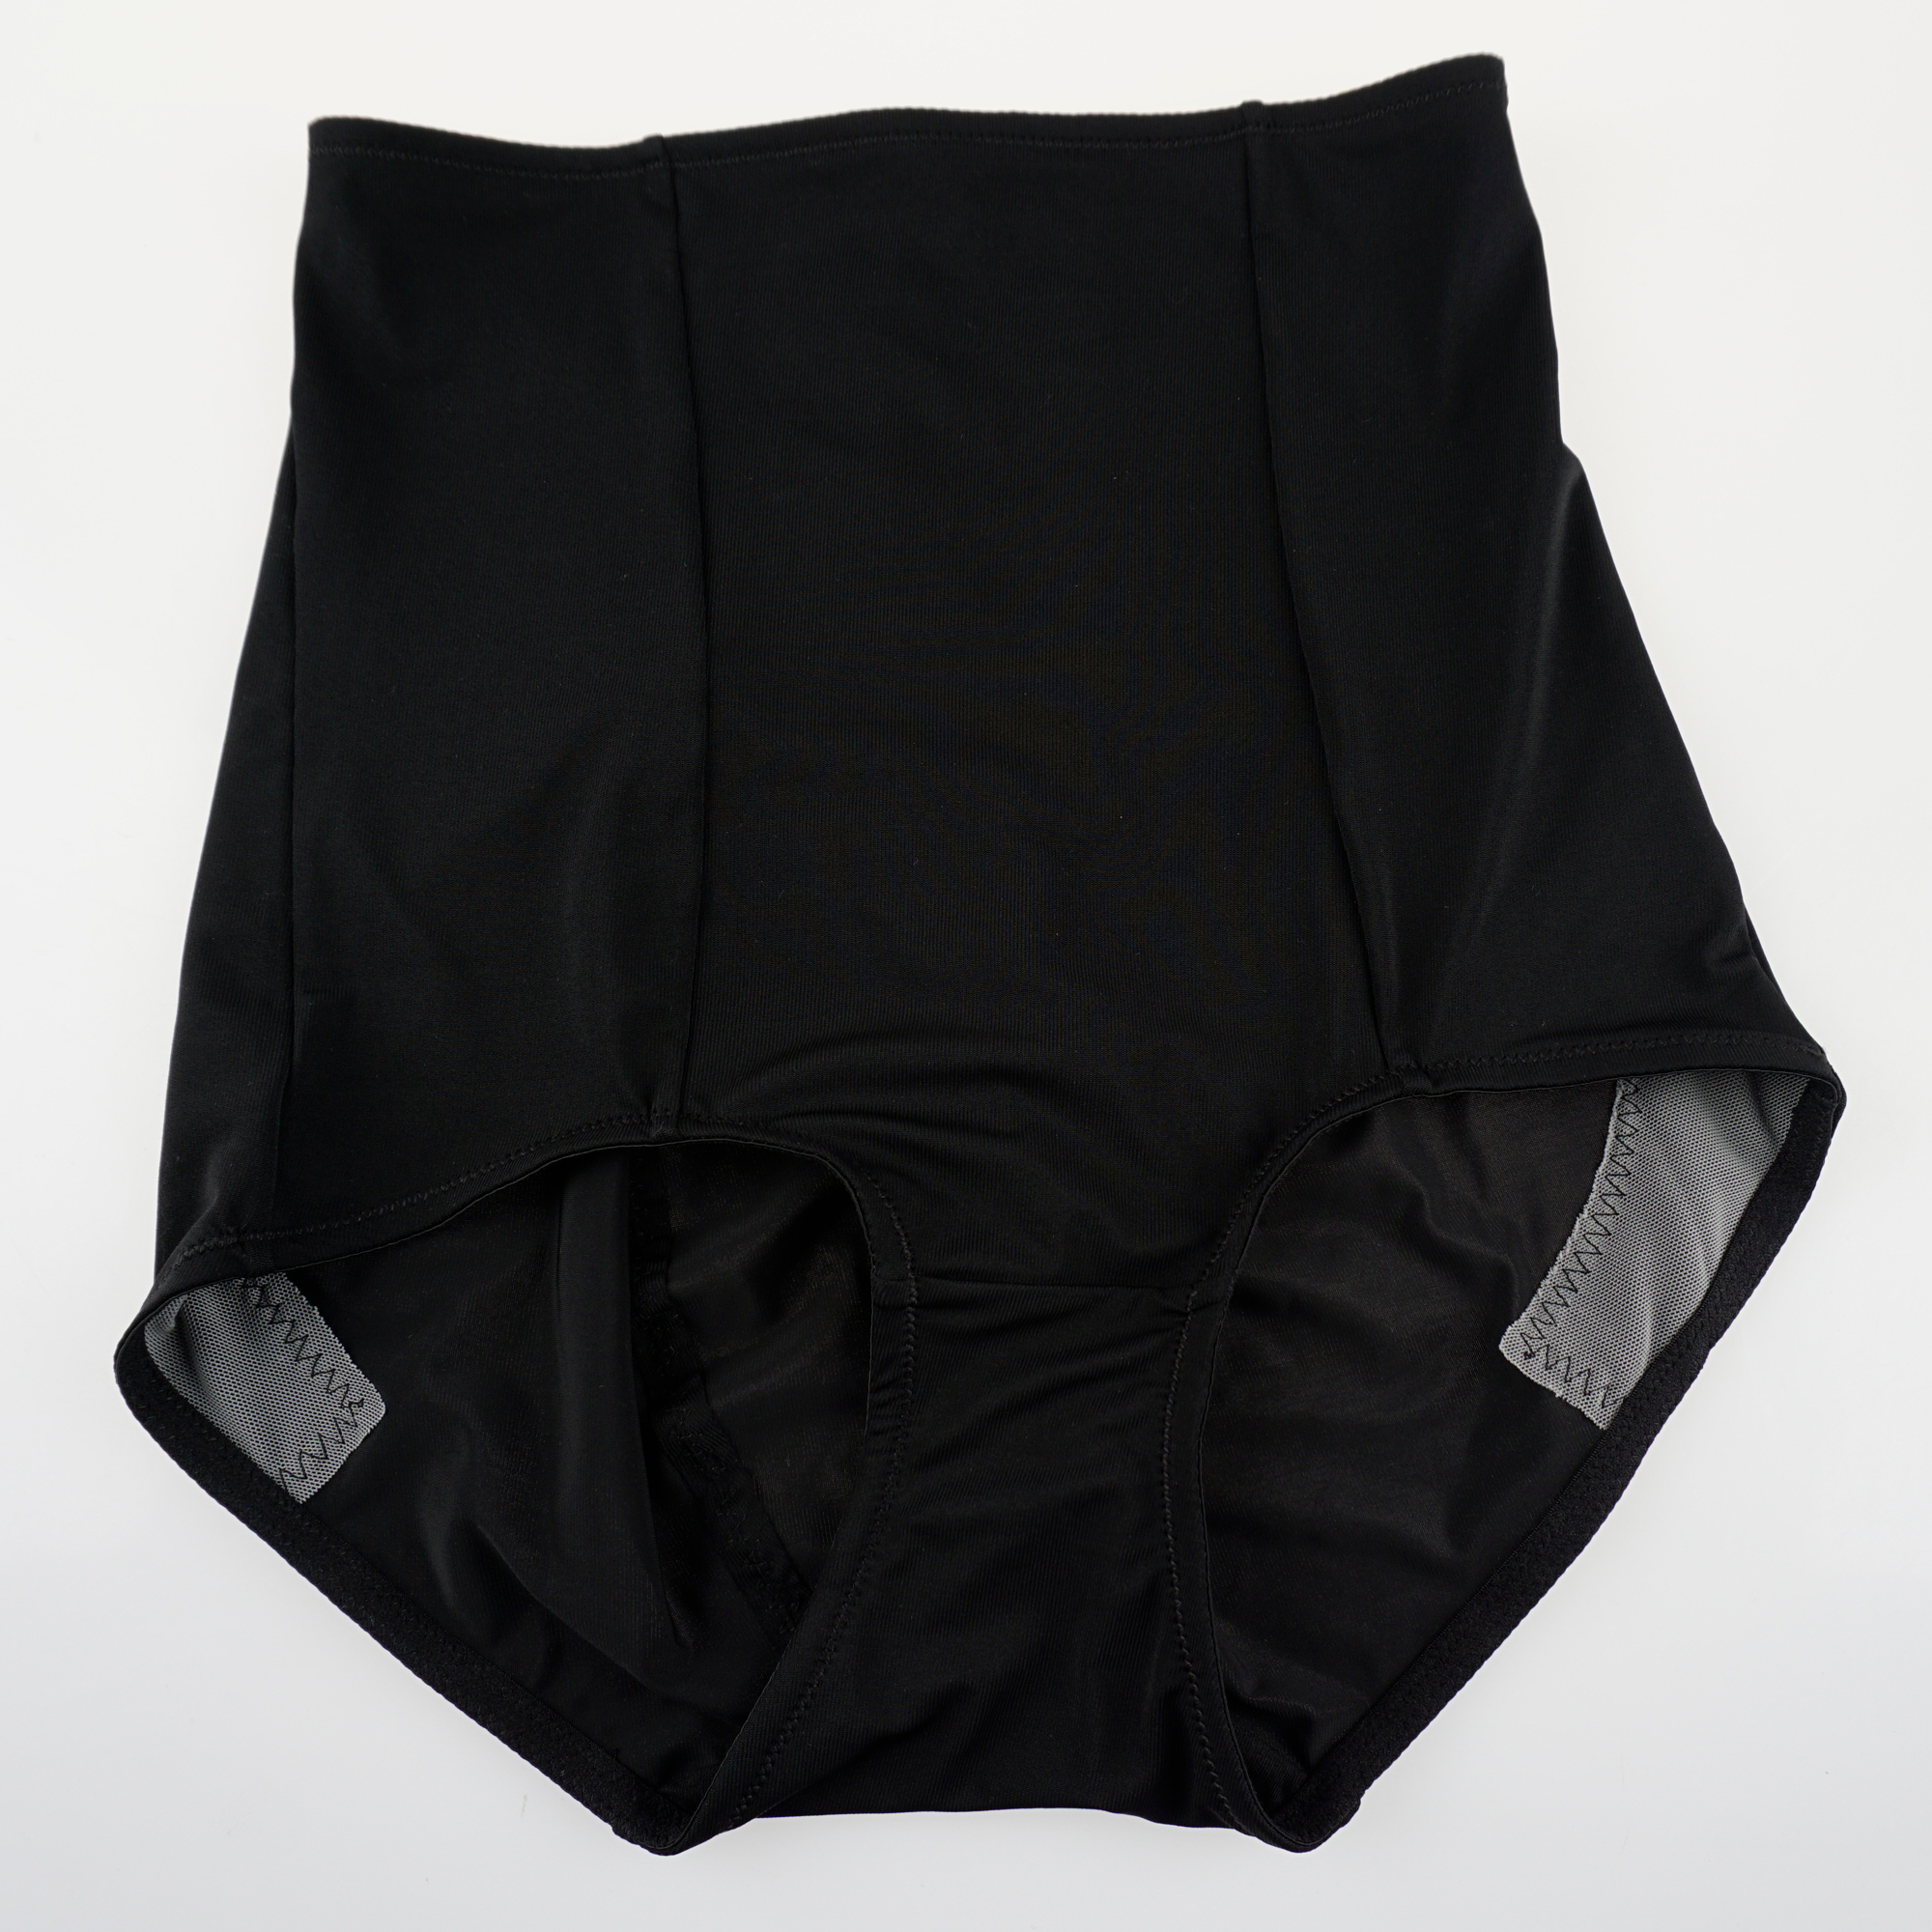 Wholesale High Waist Tummy Control Women Sexy Tight Underpants